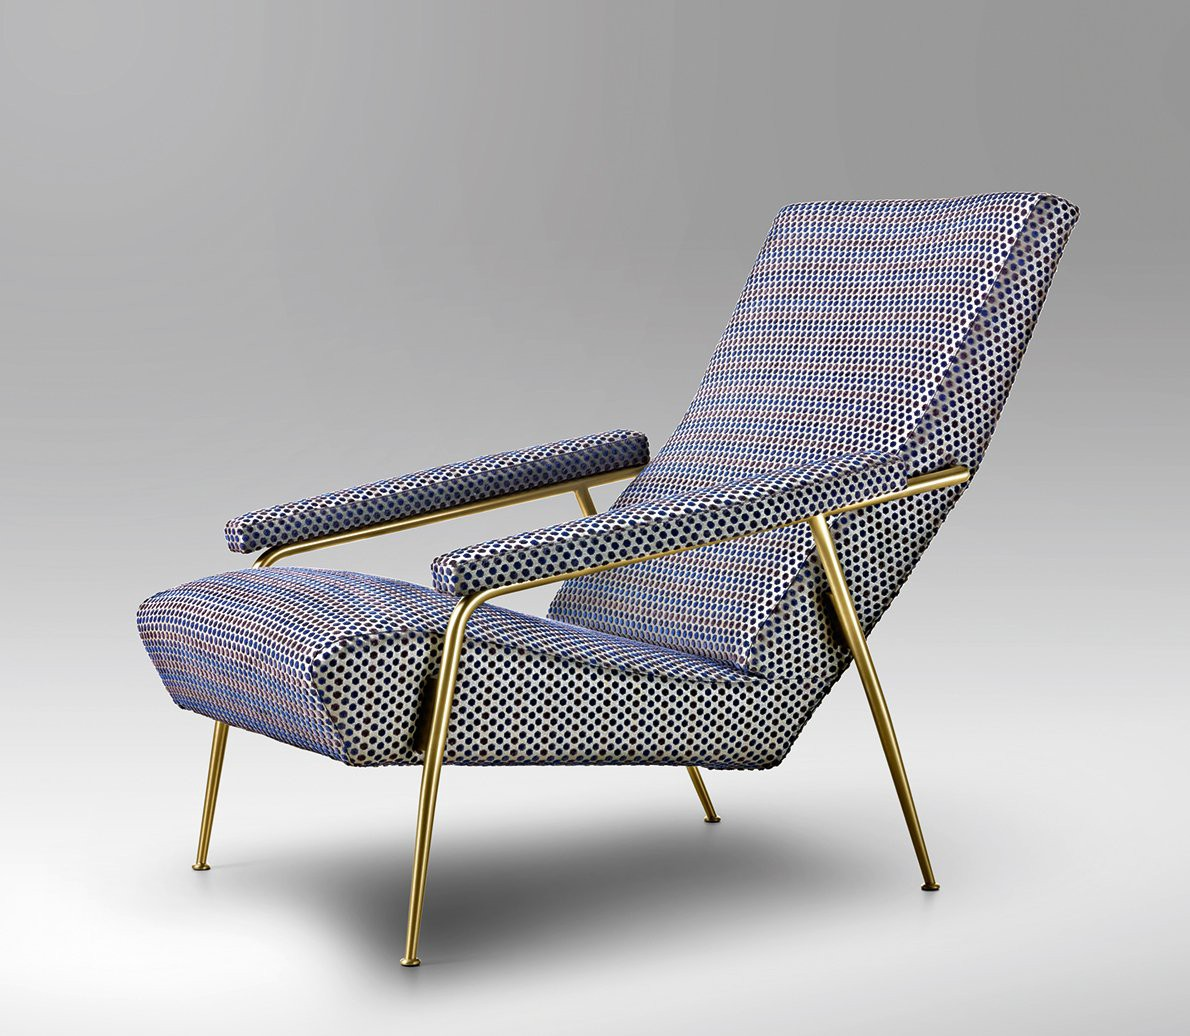 In the D.153.1 lounge chair, designed in 1953, Ponti offers a long, gently reclining seat for maximum relaxation and comfort.